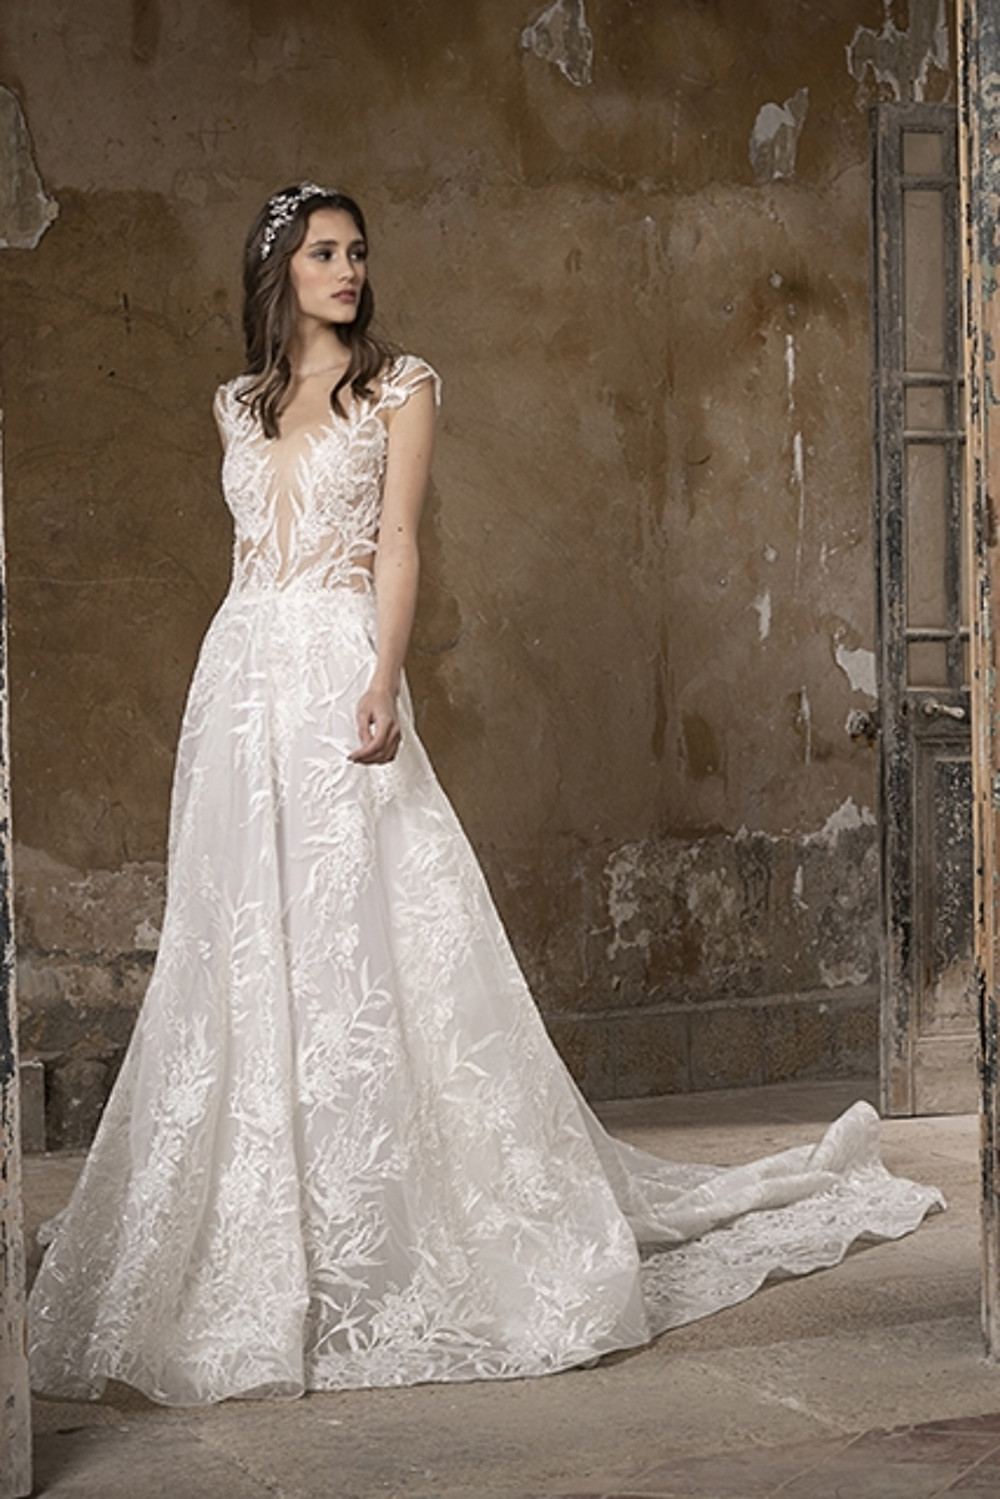 A backless wedding gown with a plunging neckline enriched with intricate embroidery and sequin detailing